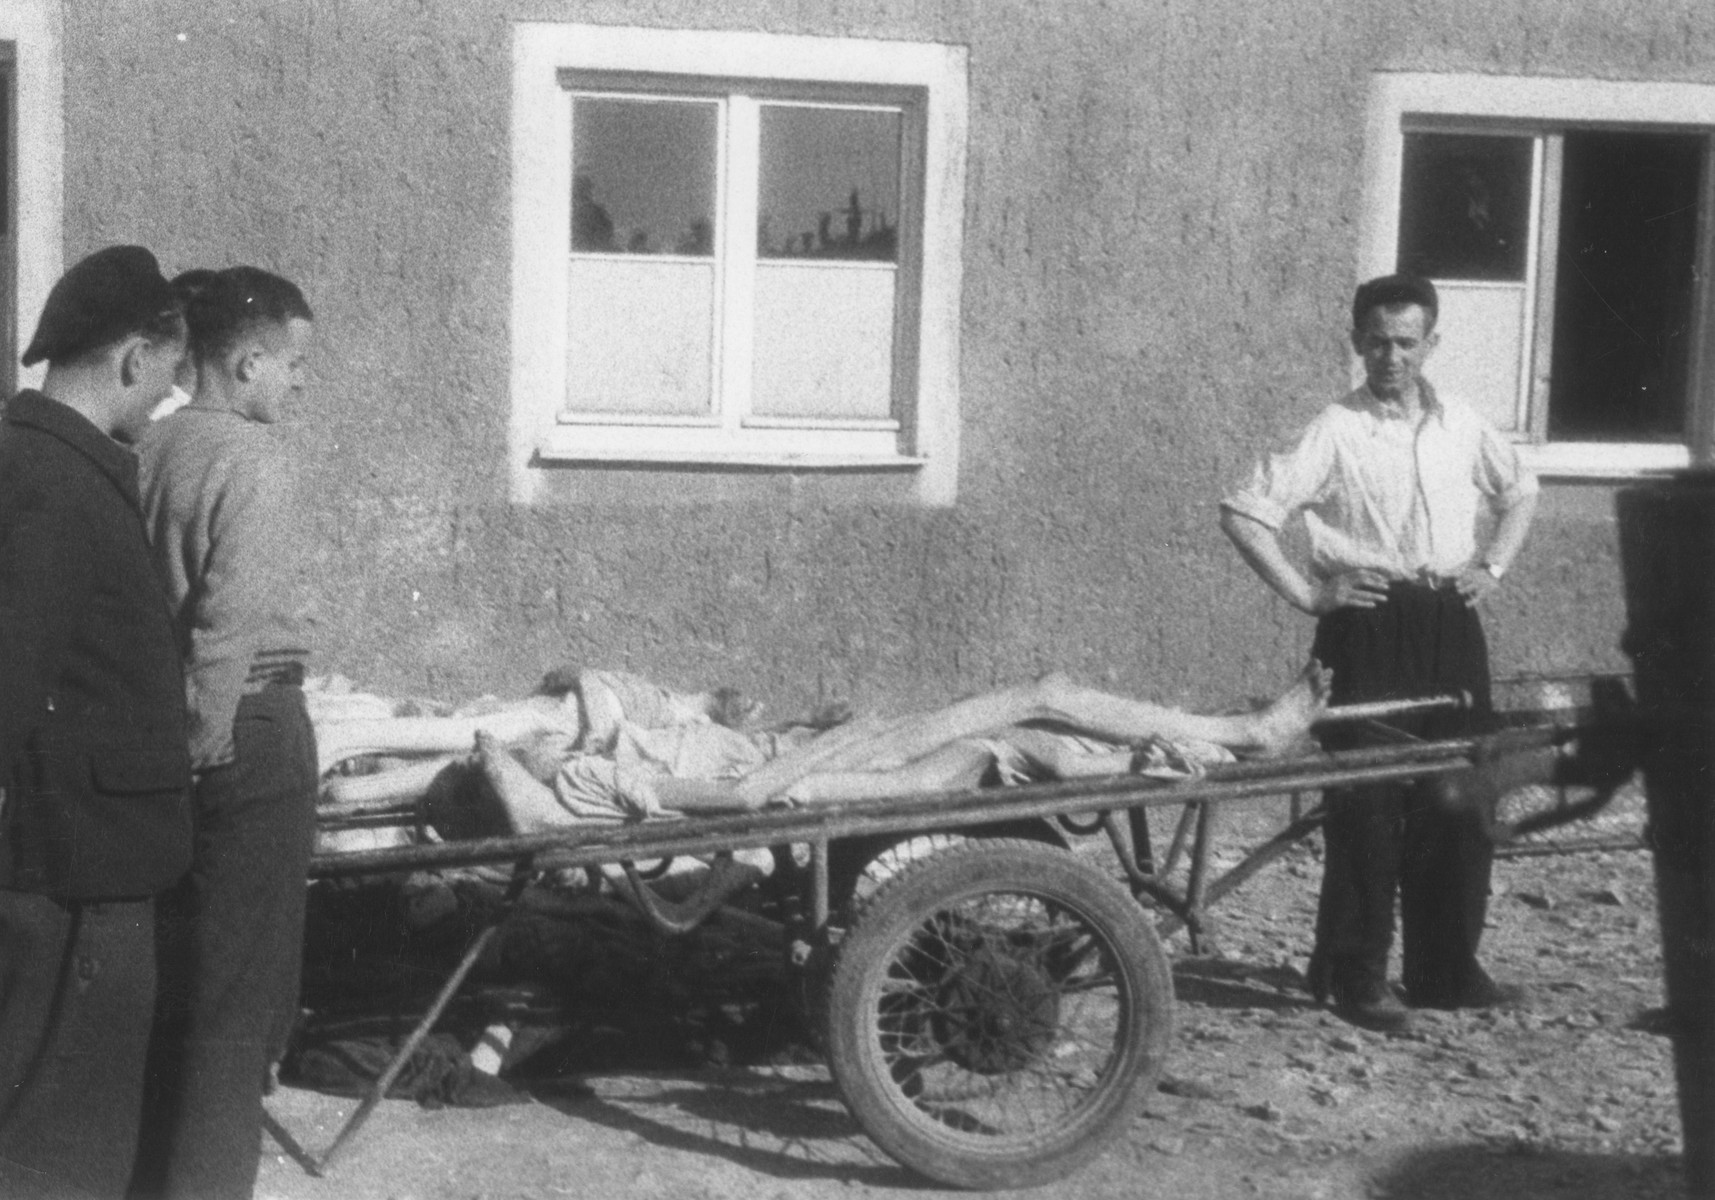 Survivors stand next to a cart loaded with corpses outside the crematoria in the newly liberated Buchenwald concentration camp.